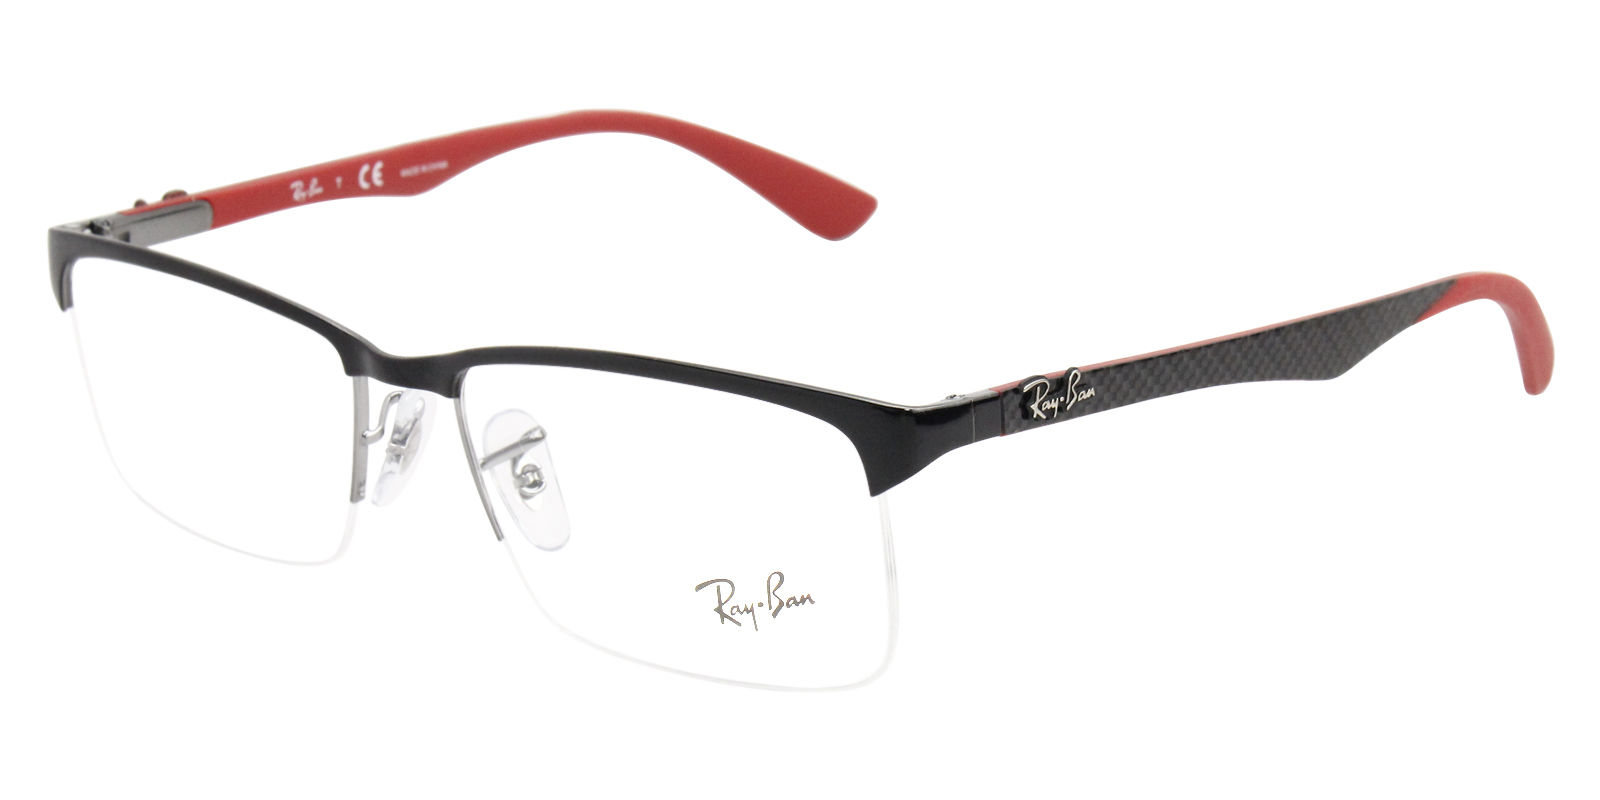 4 Things You Need to Know About Buying Eyewear  VSP Blog